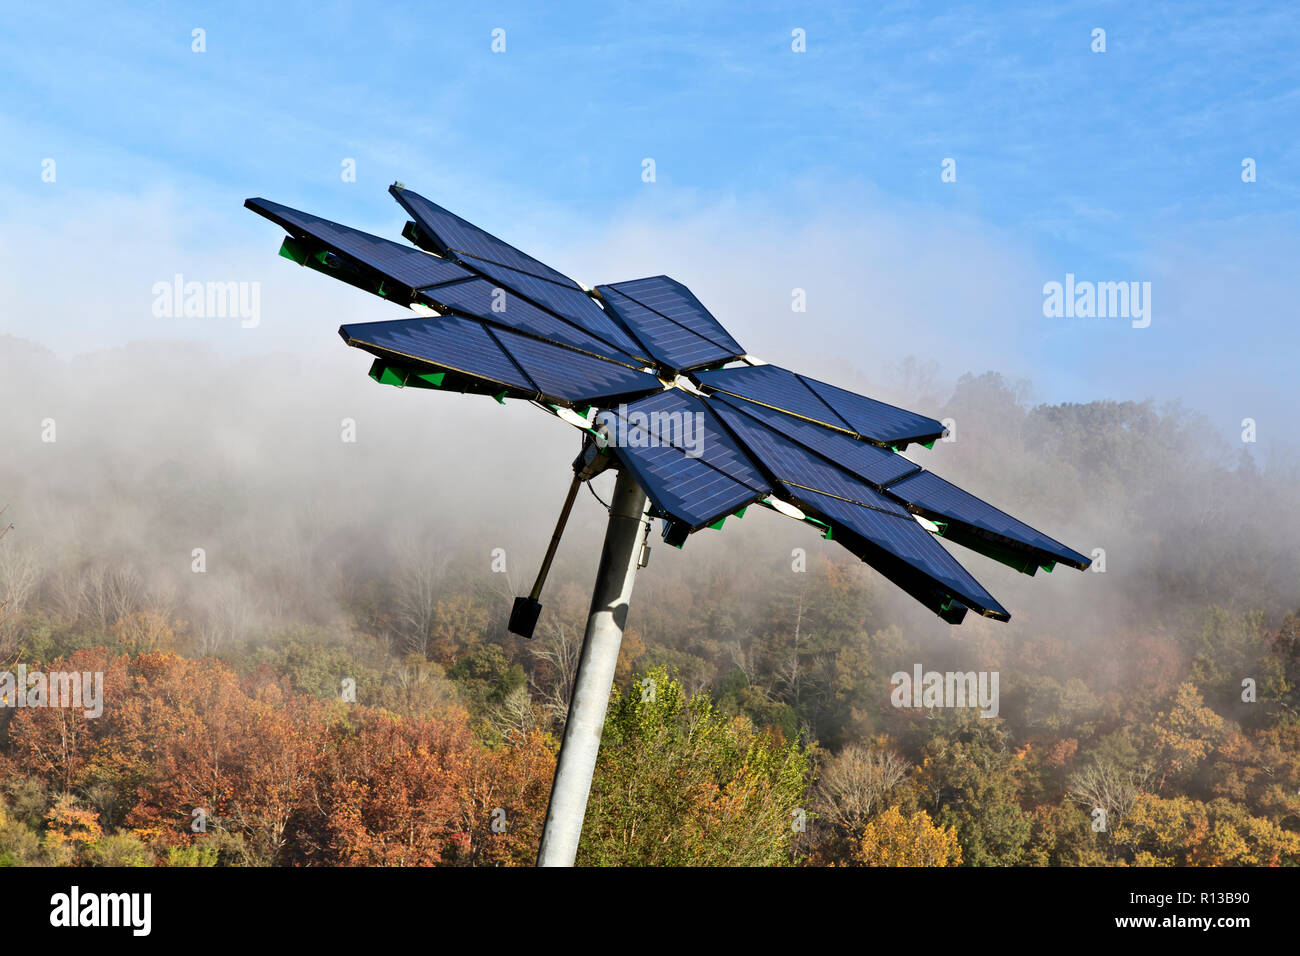 Solar array identified as  'Solar Photovoltaic Flair',  facilitates electric vehicle charging station, dissipating morning fog. - Stock Image